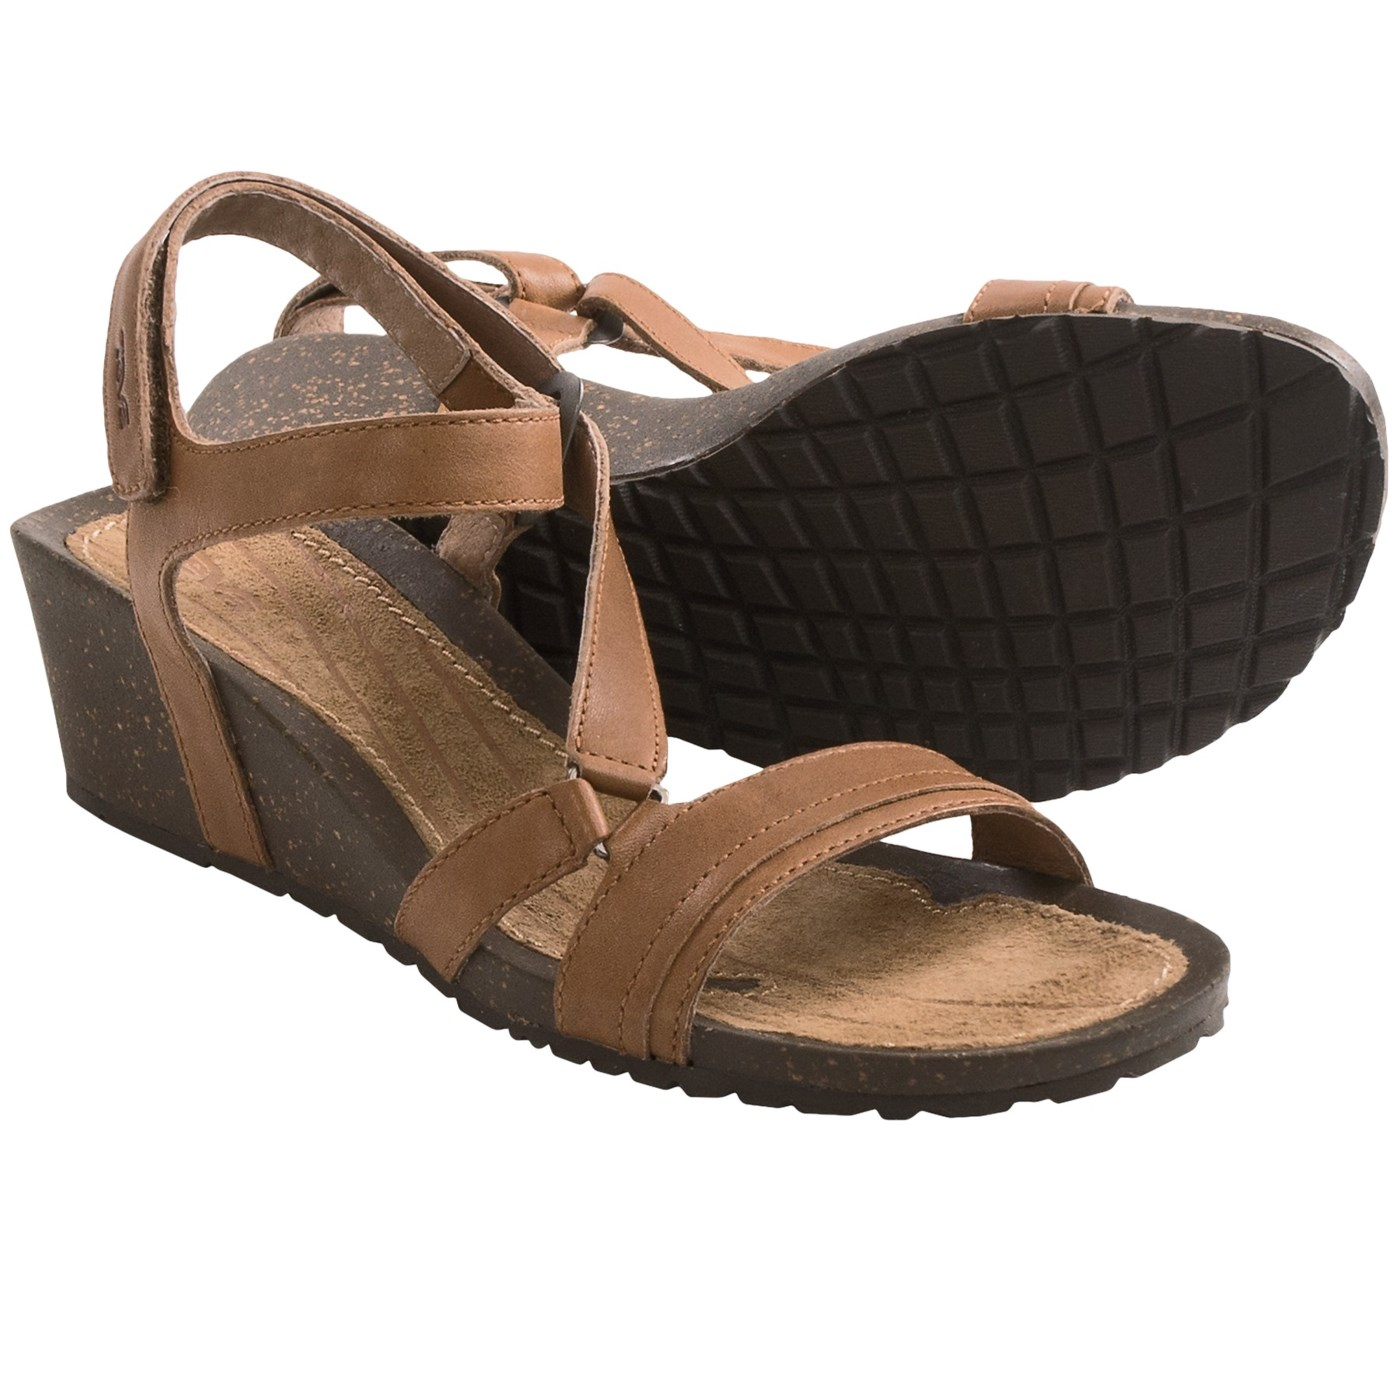 d307709eb10 Teva Cabrillo Crossover Wedge Sandals (For Women) 9105N 53 on PopScreen